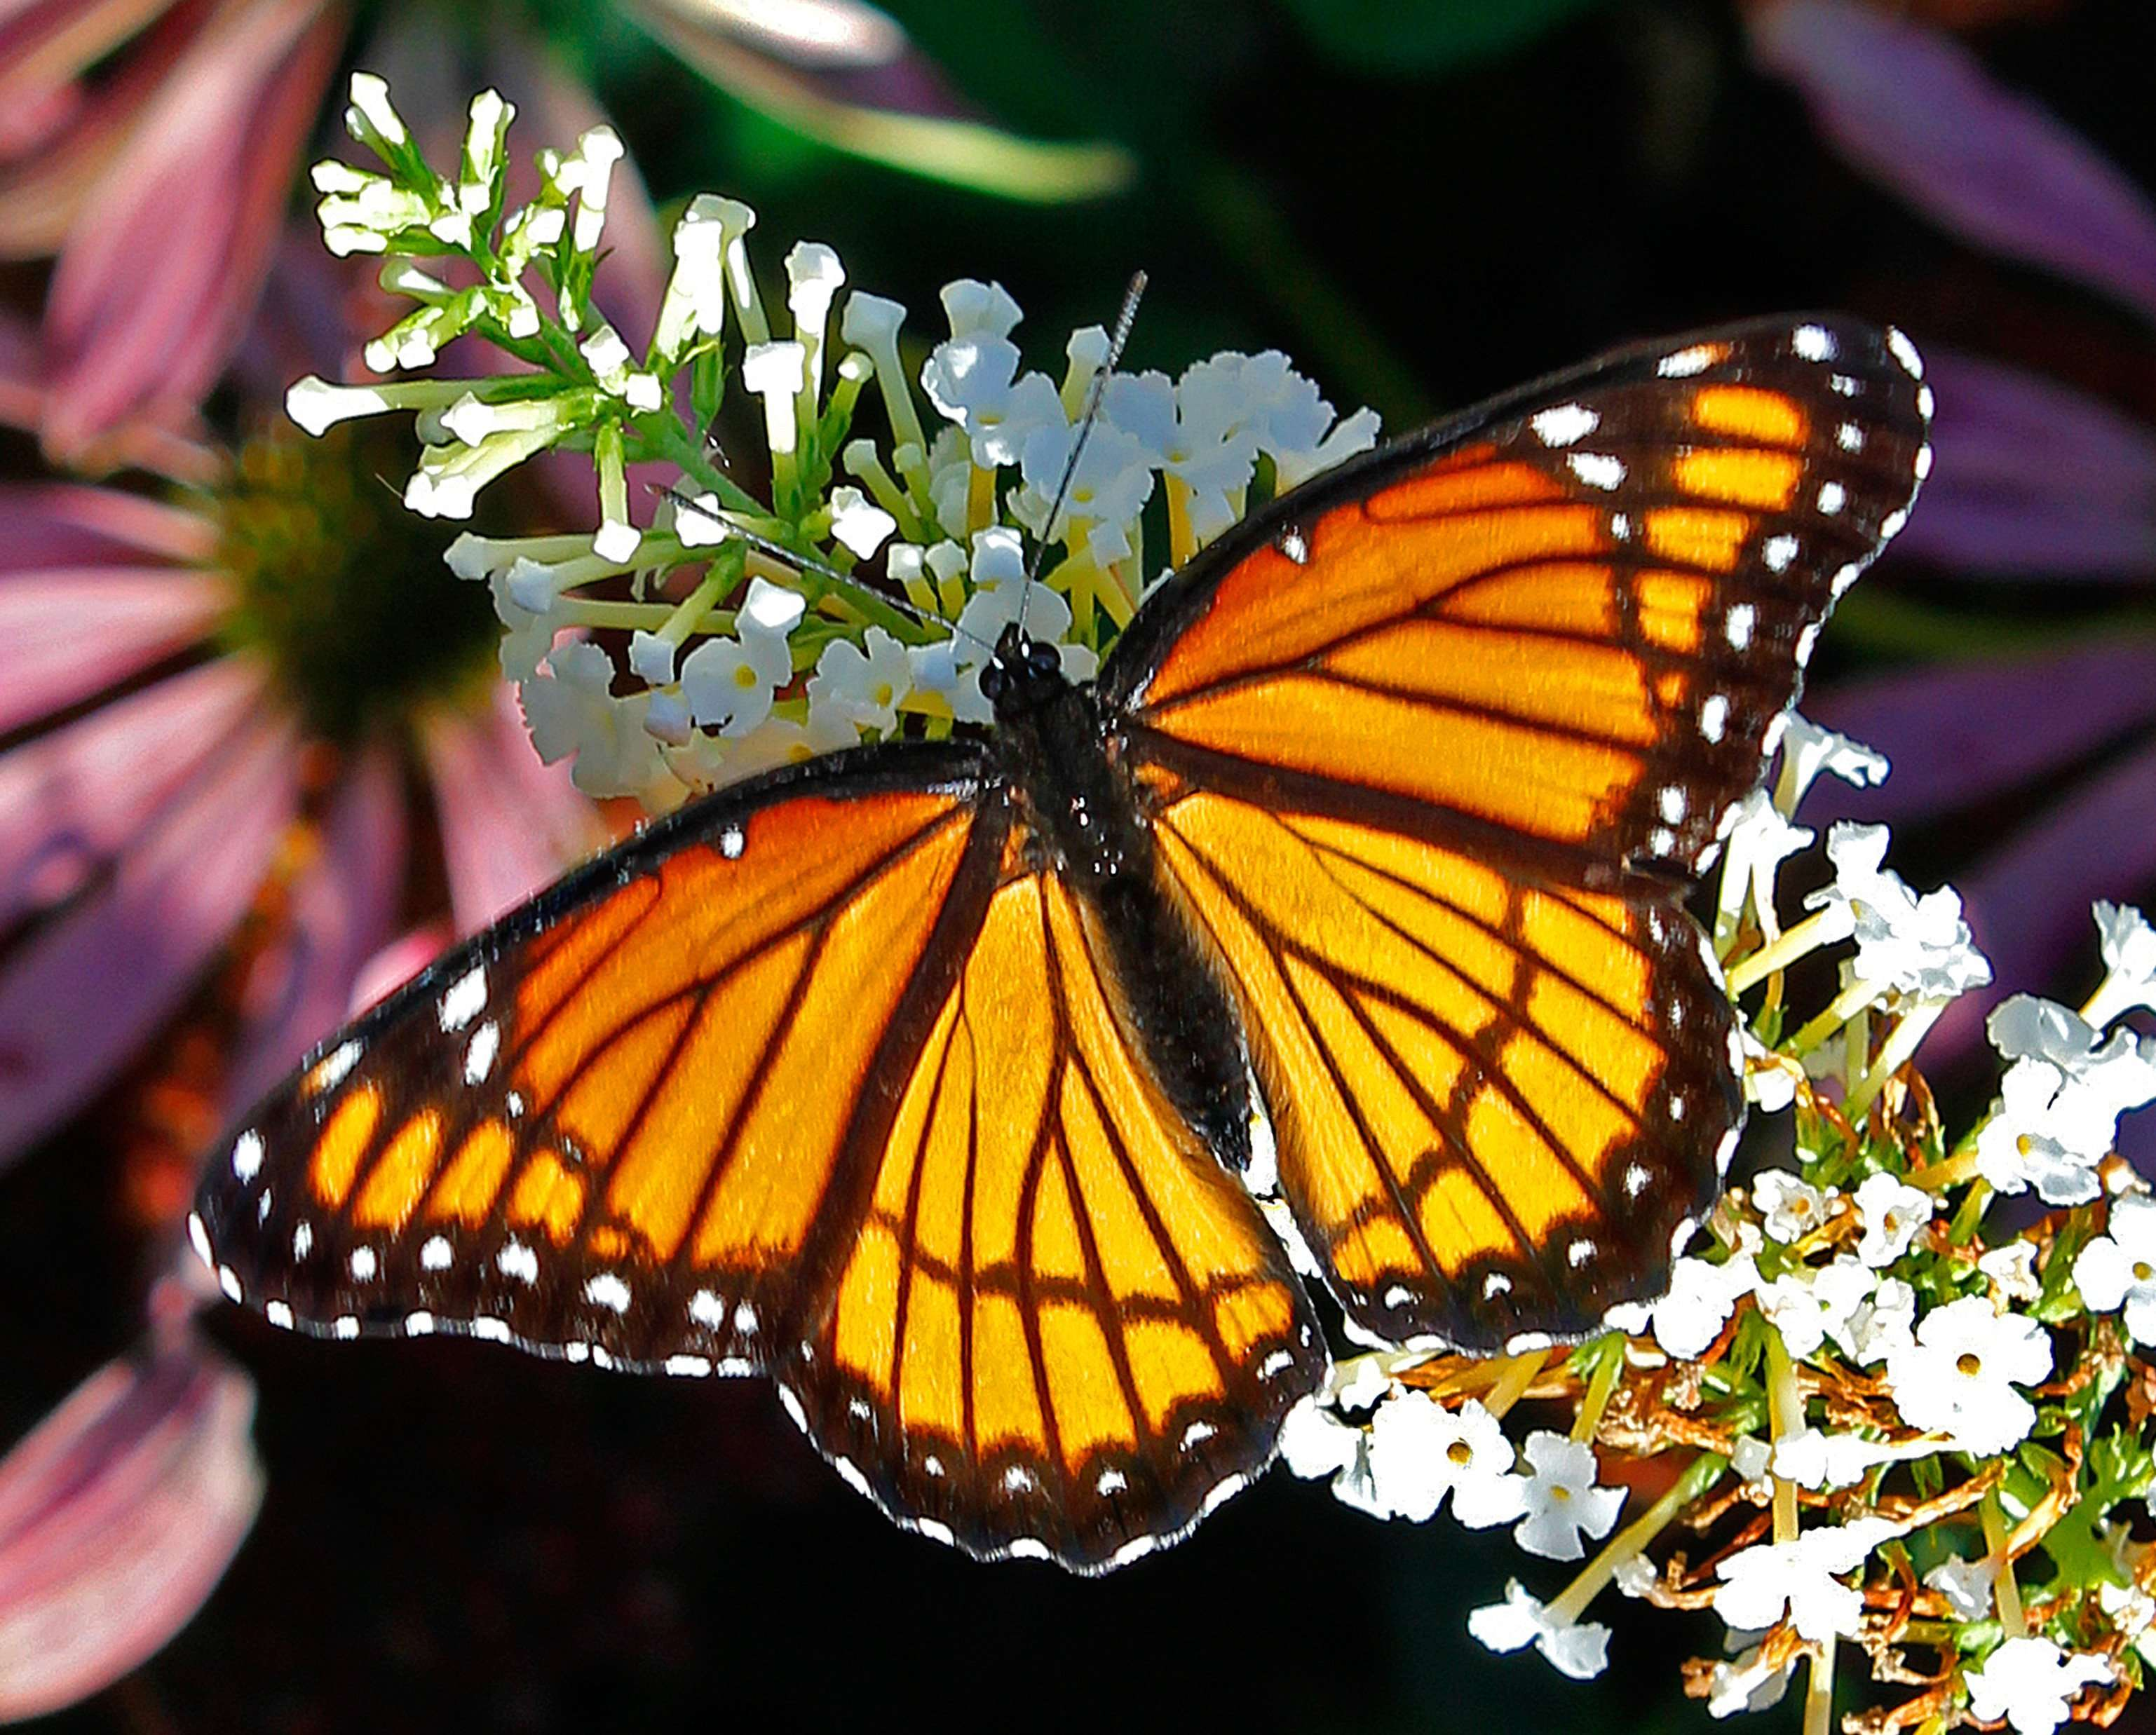 Viceroy Butterfly - Dorsal View